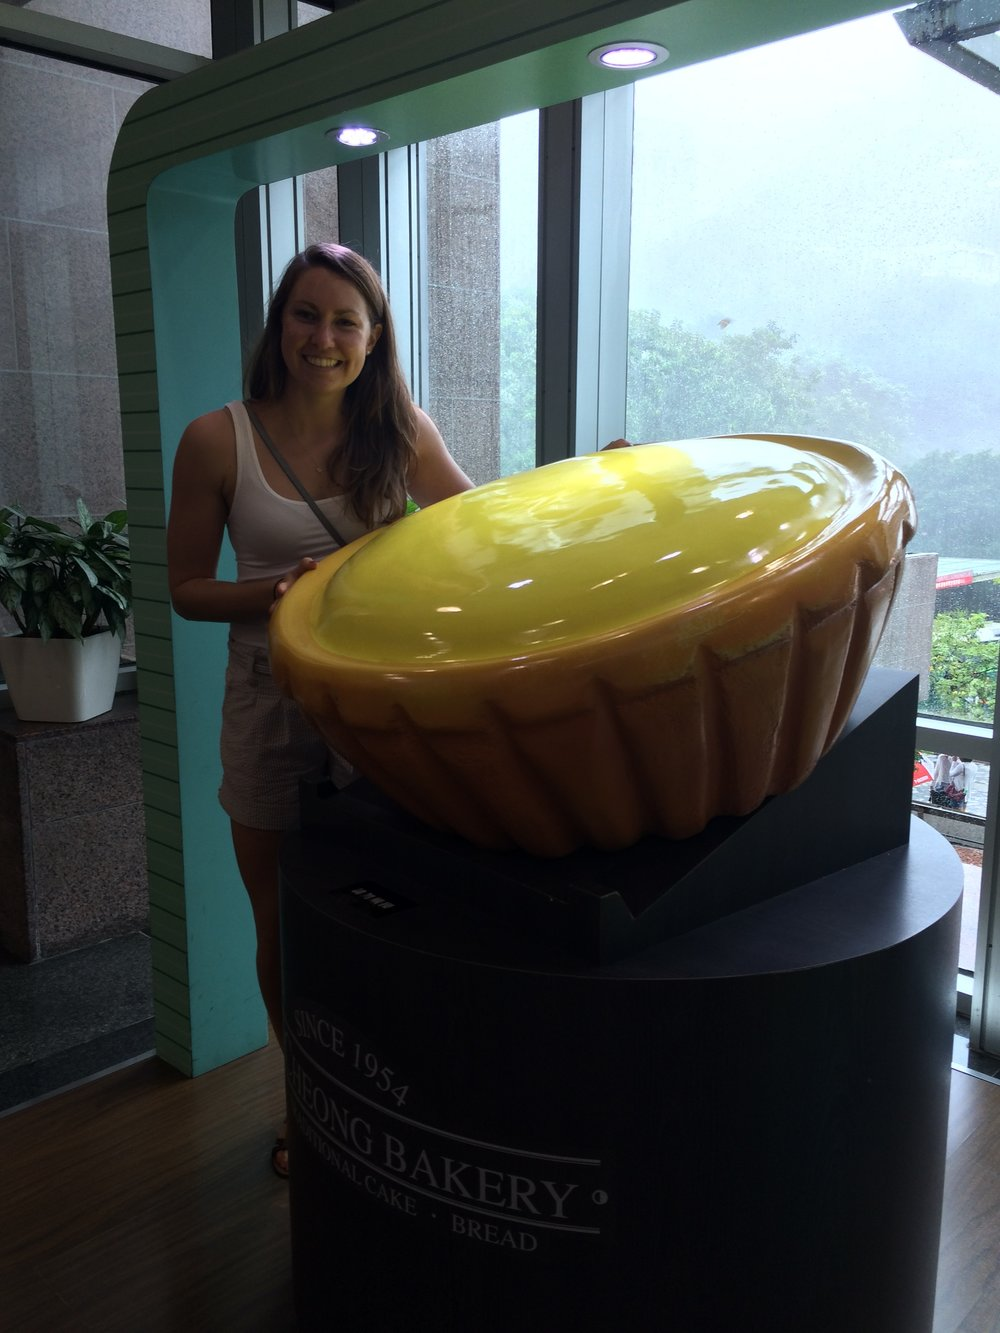 Super excited about a giant egg tart in Hong Kong.